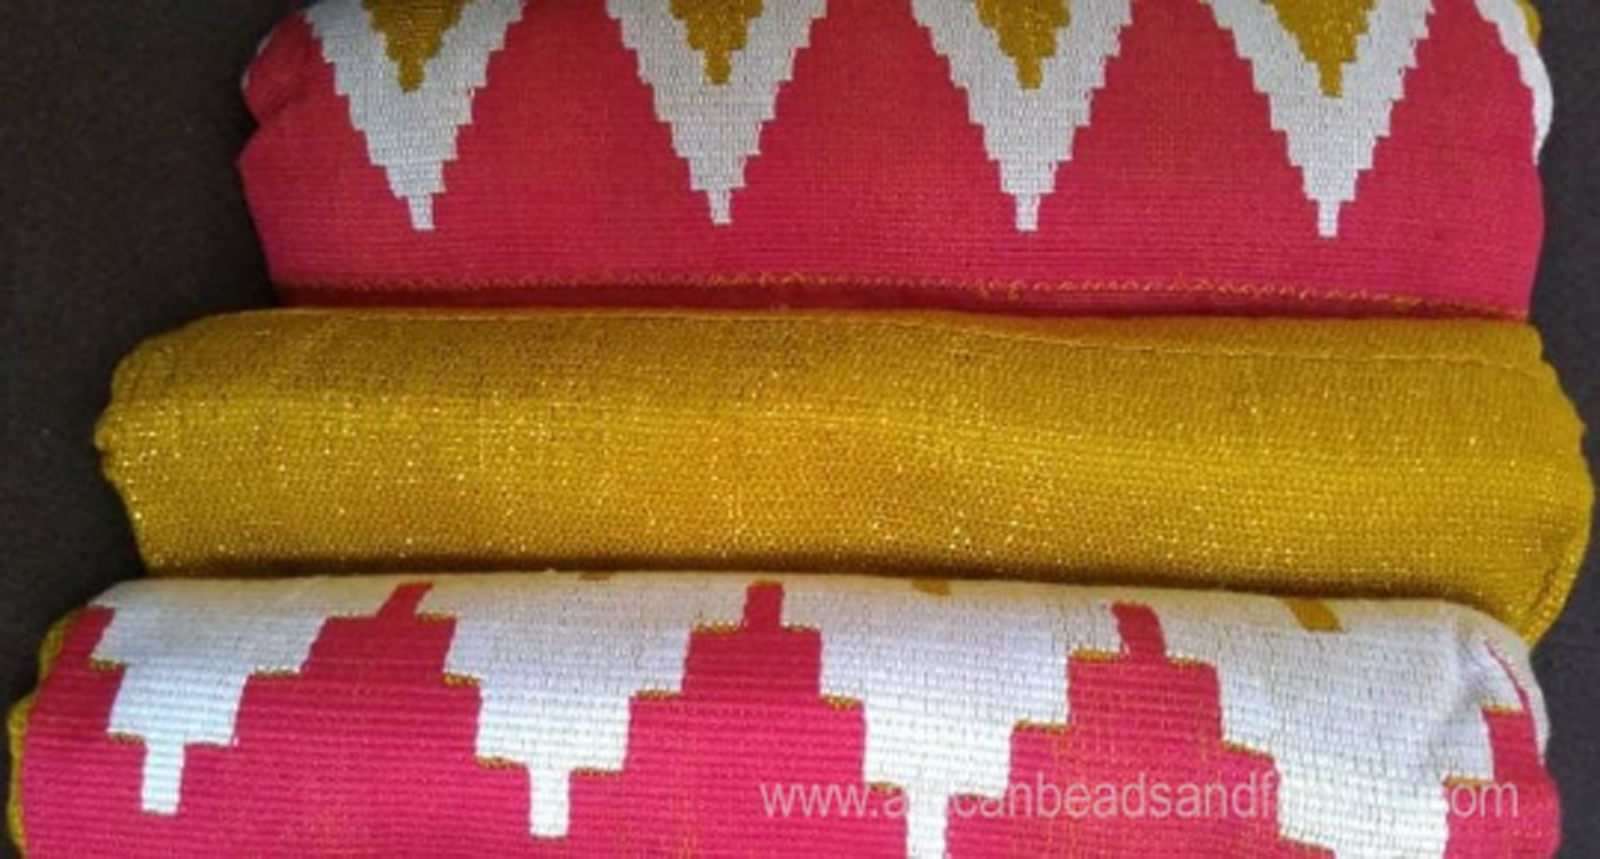 Kente-Fabric-Ghana-Handwoven-Ethnic-Cloth-Red-and-Gold